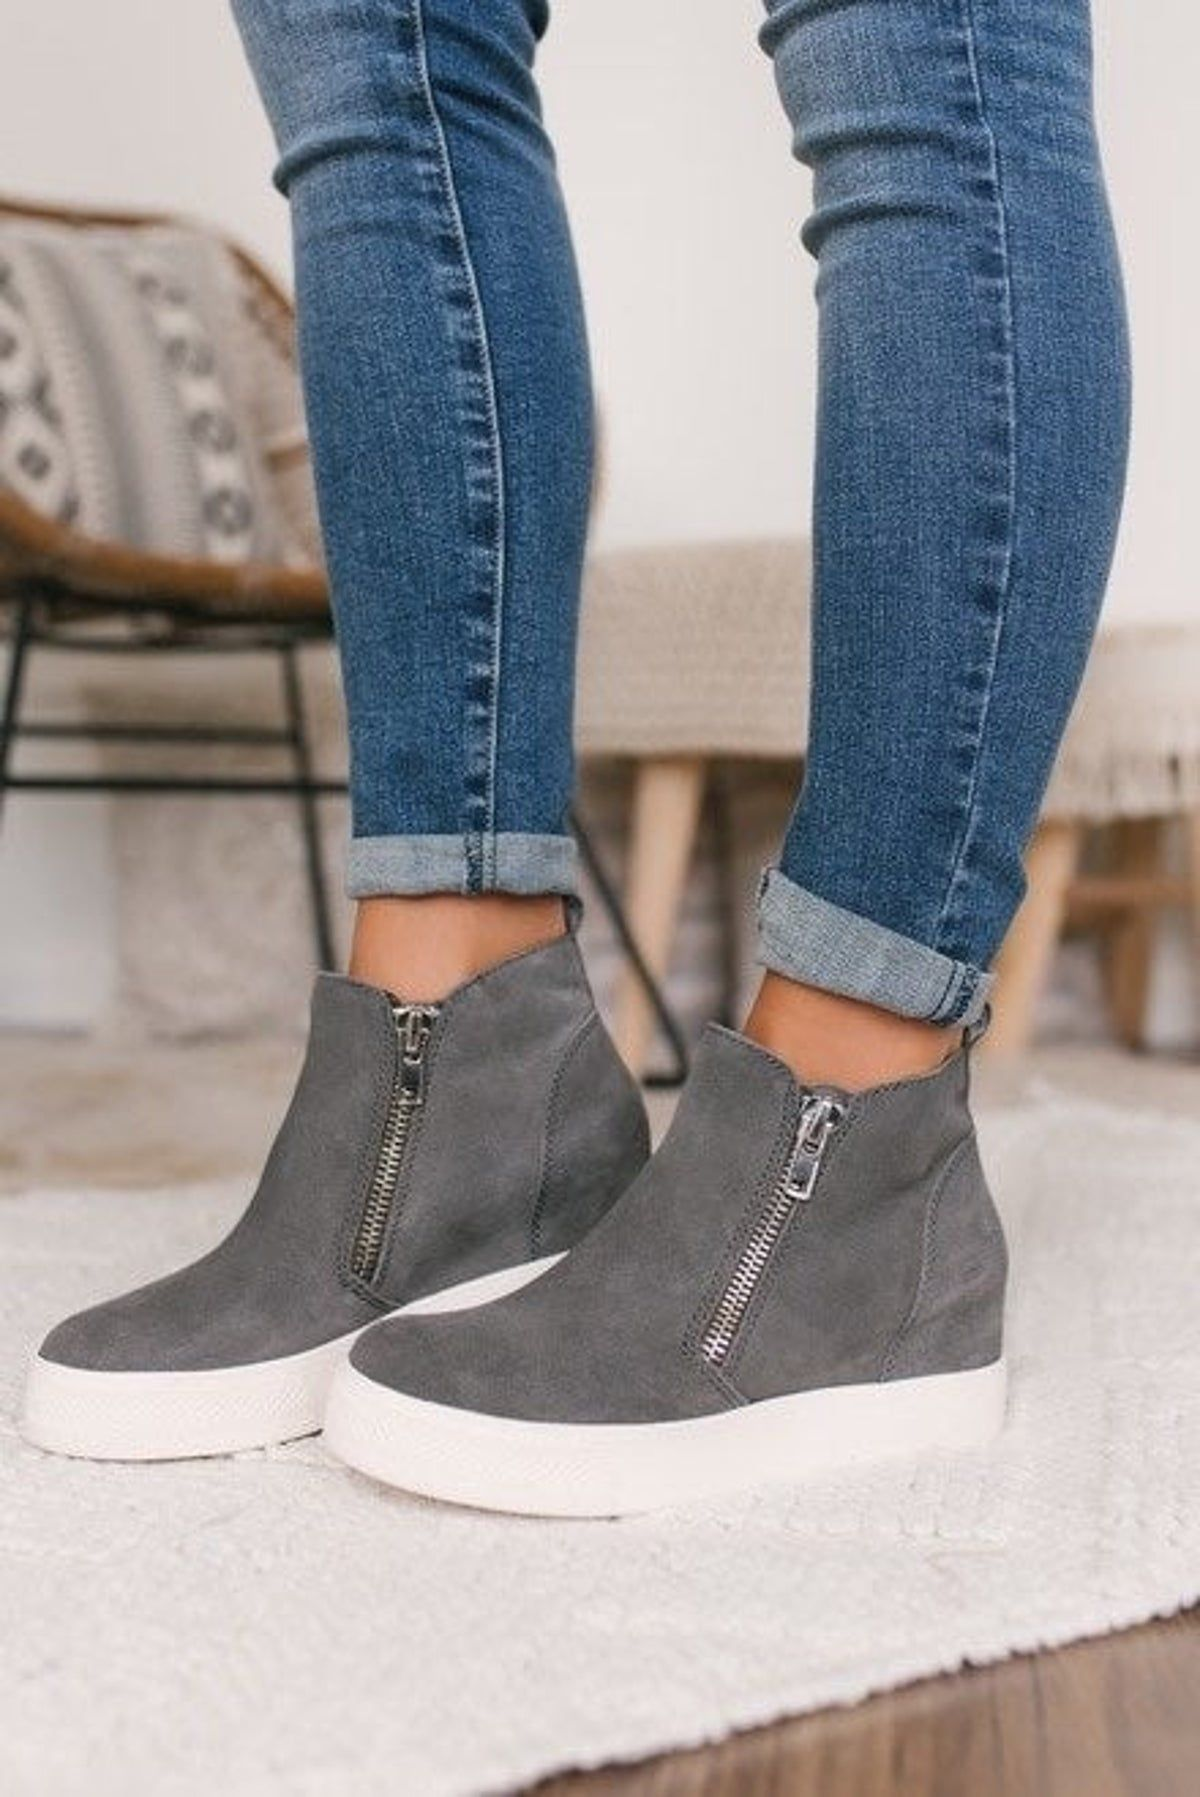 Wedge sneakers outfit, Shoe boots